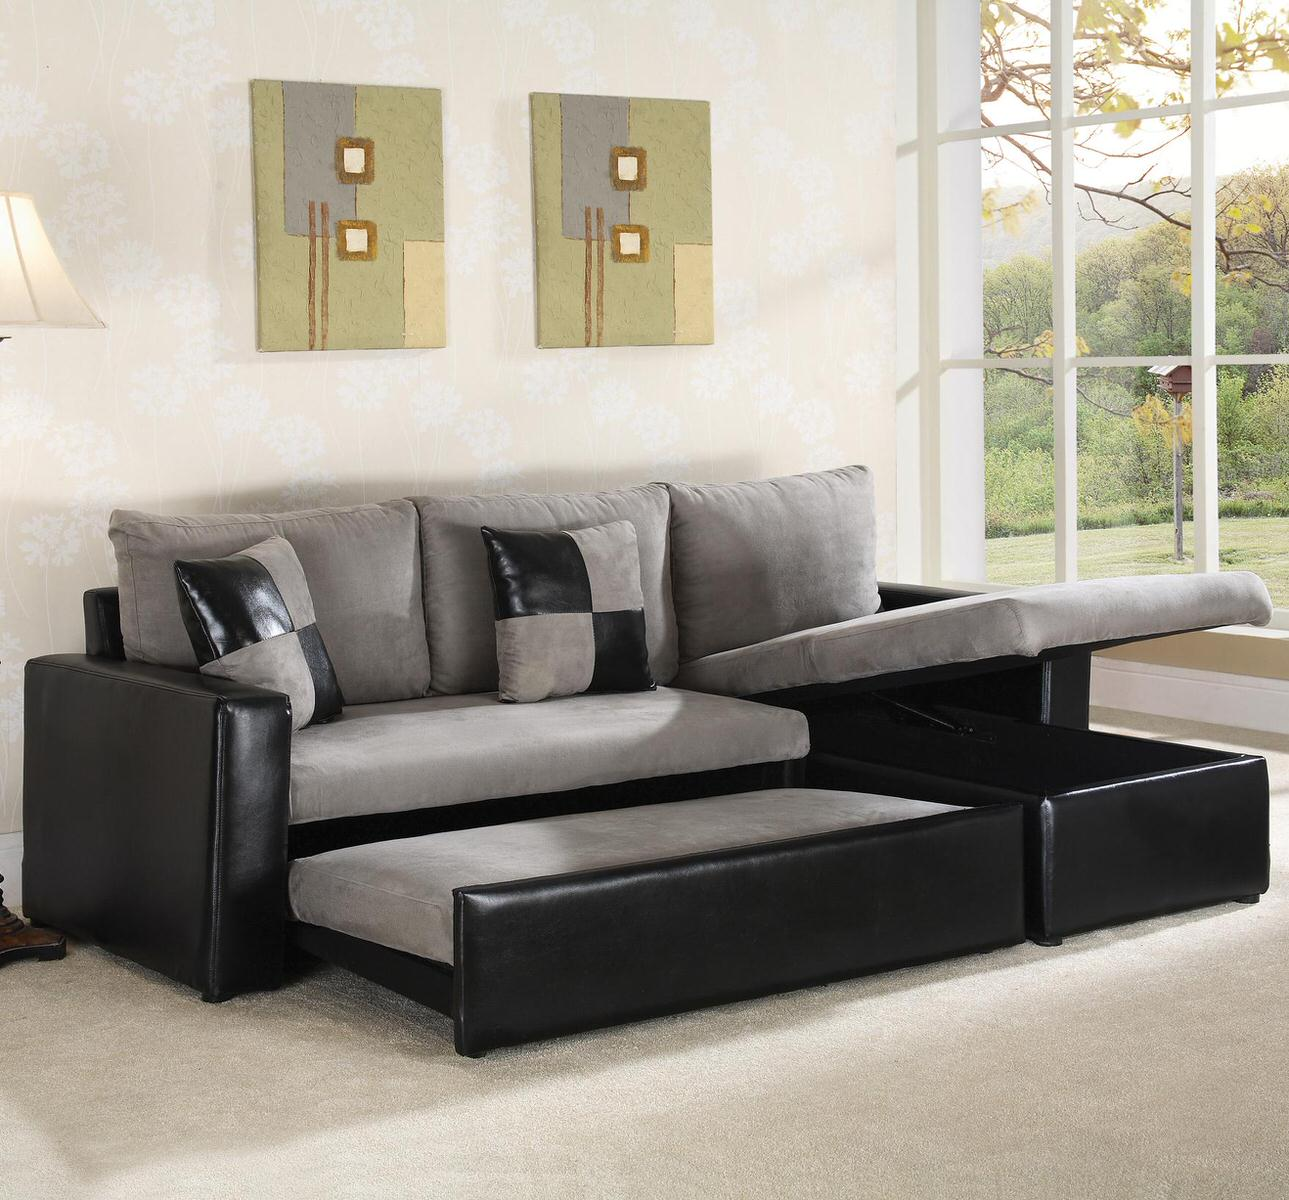 64008 sectional sofa sleeper by world imports - Best Sofas In The World